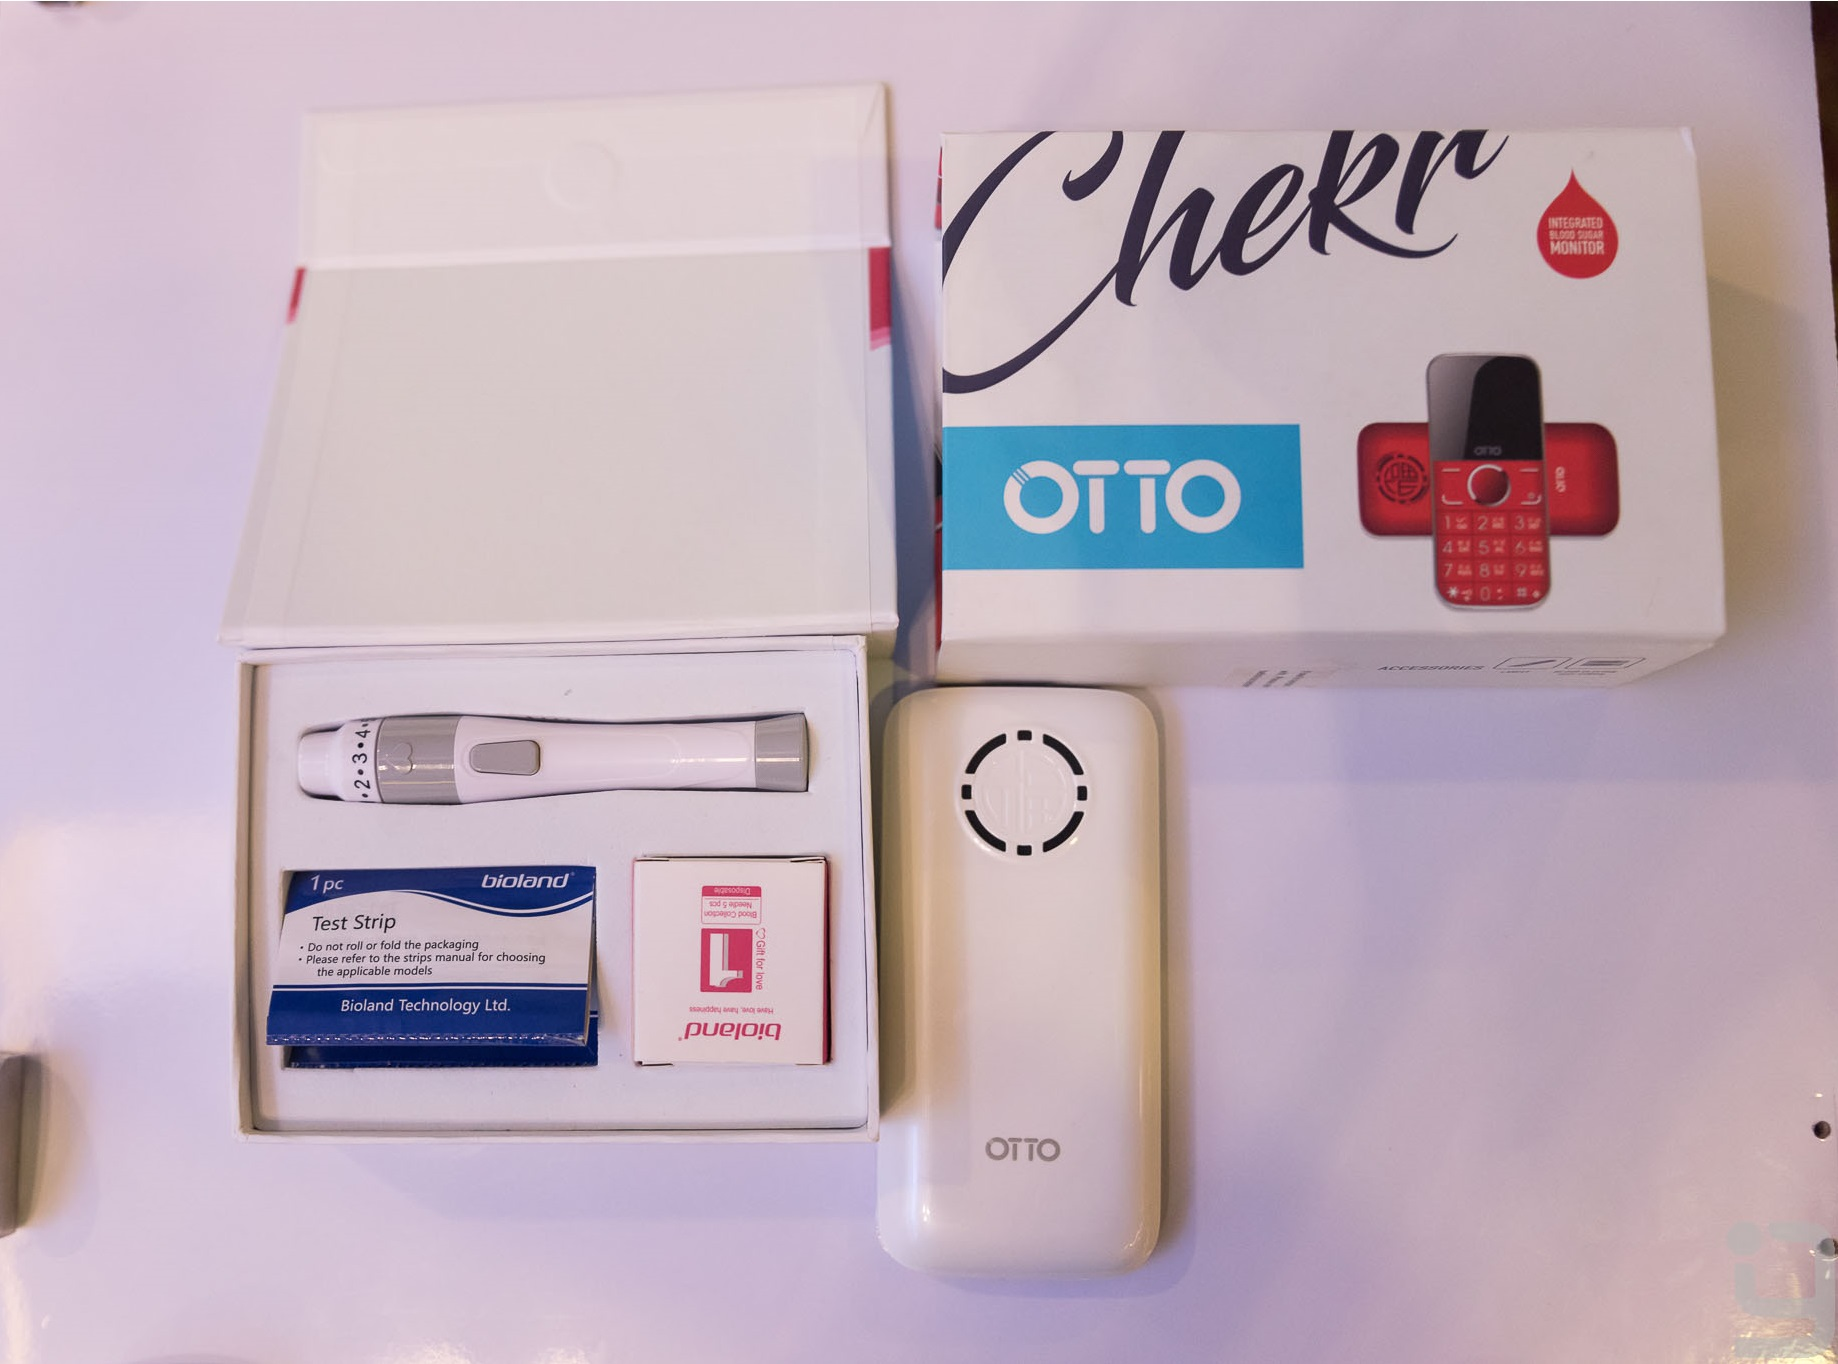 Otto Chekr Bar phone